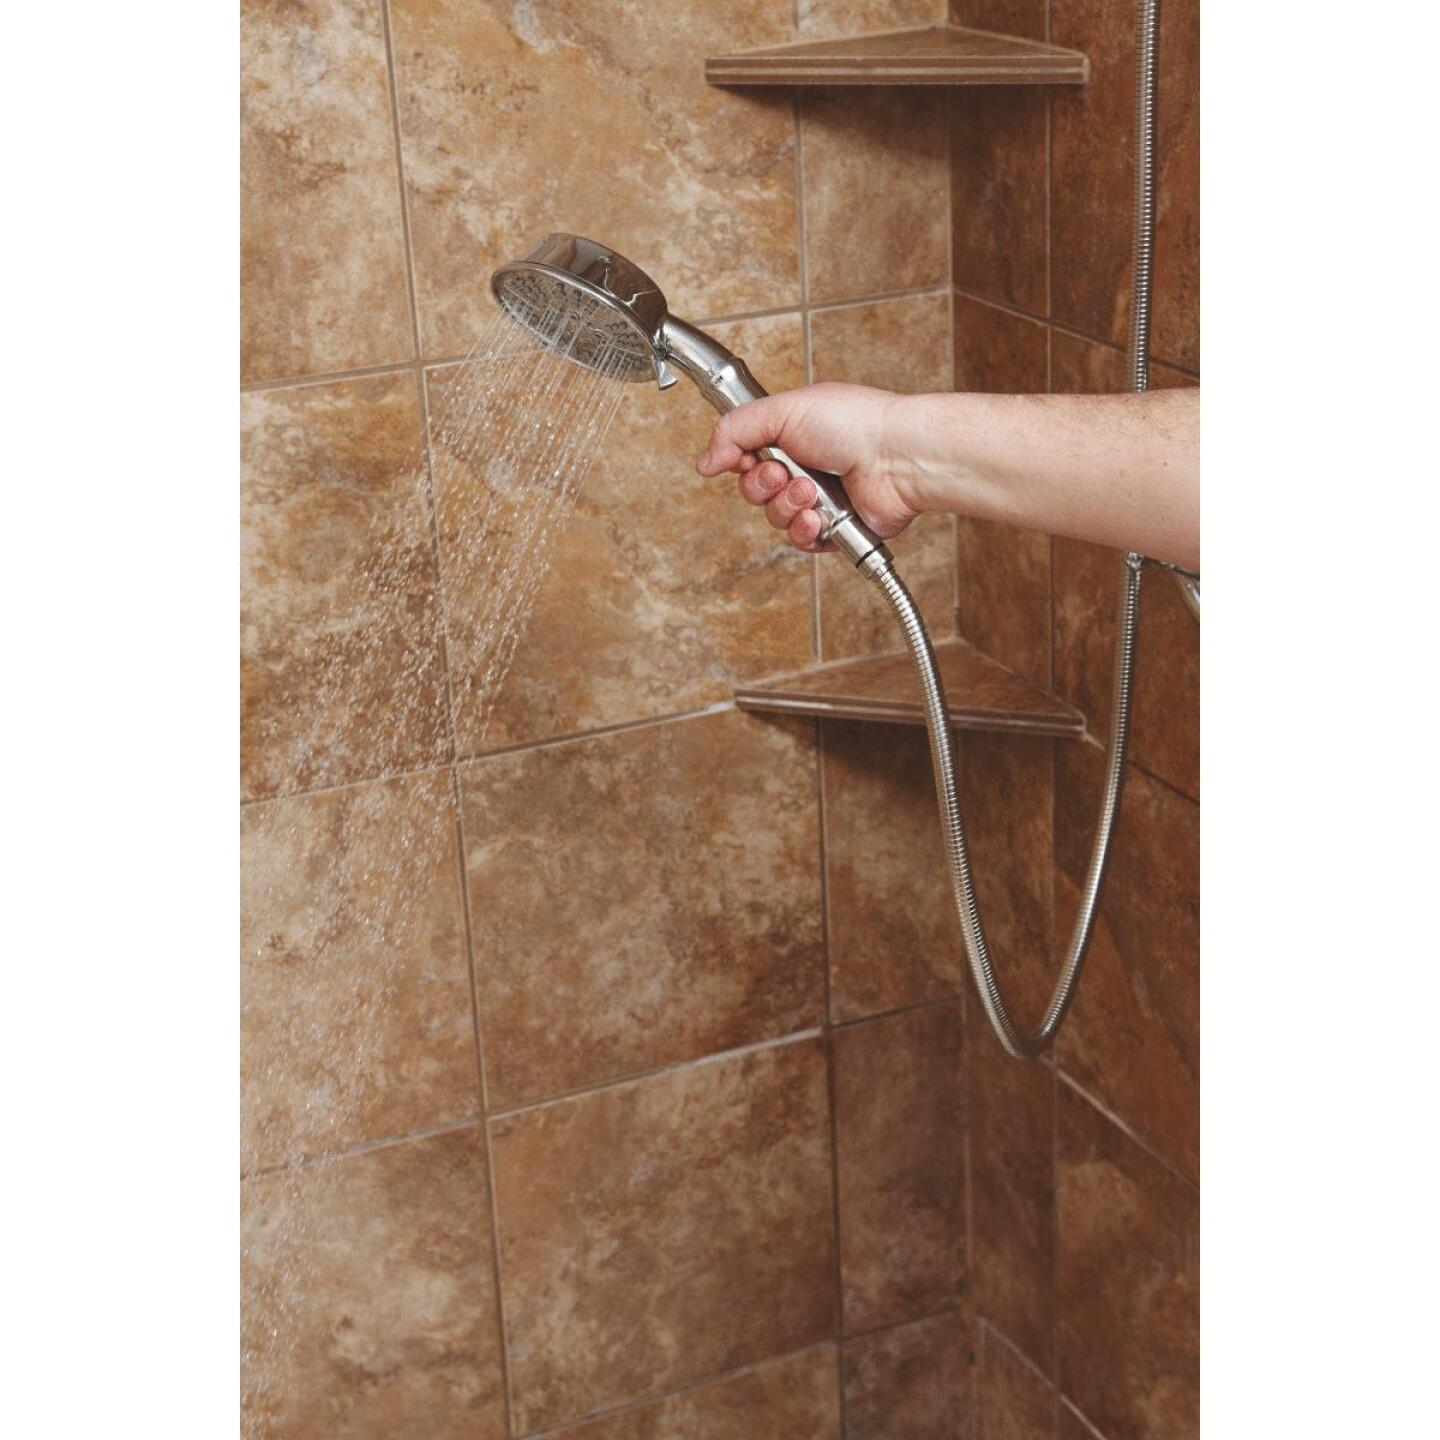 Home Impressions 5-Spray 1.75 GPM Combo Hand-Held Shower & Showerhead, Chrome Image 5